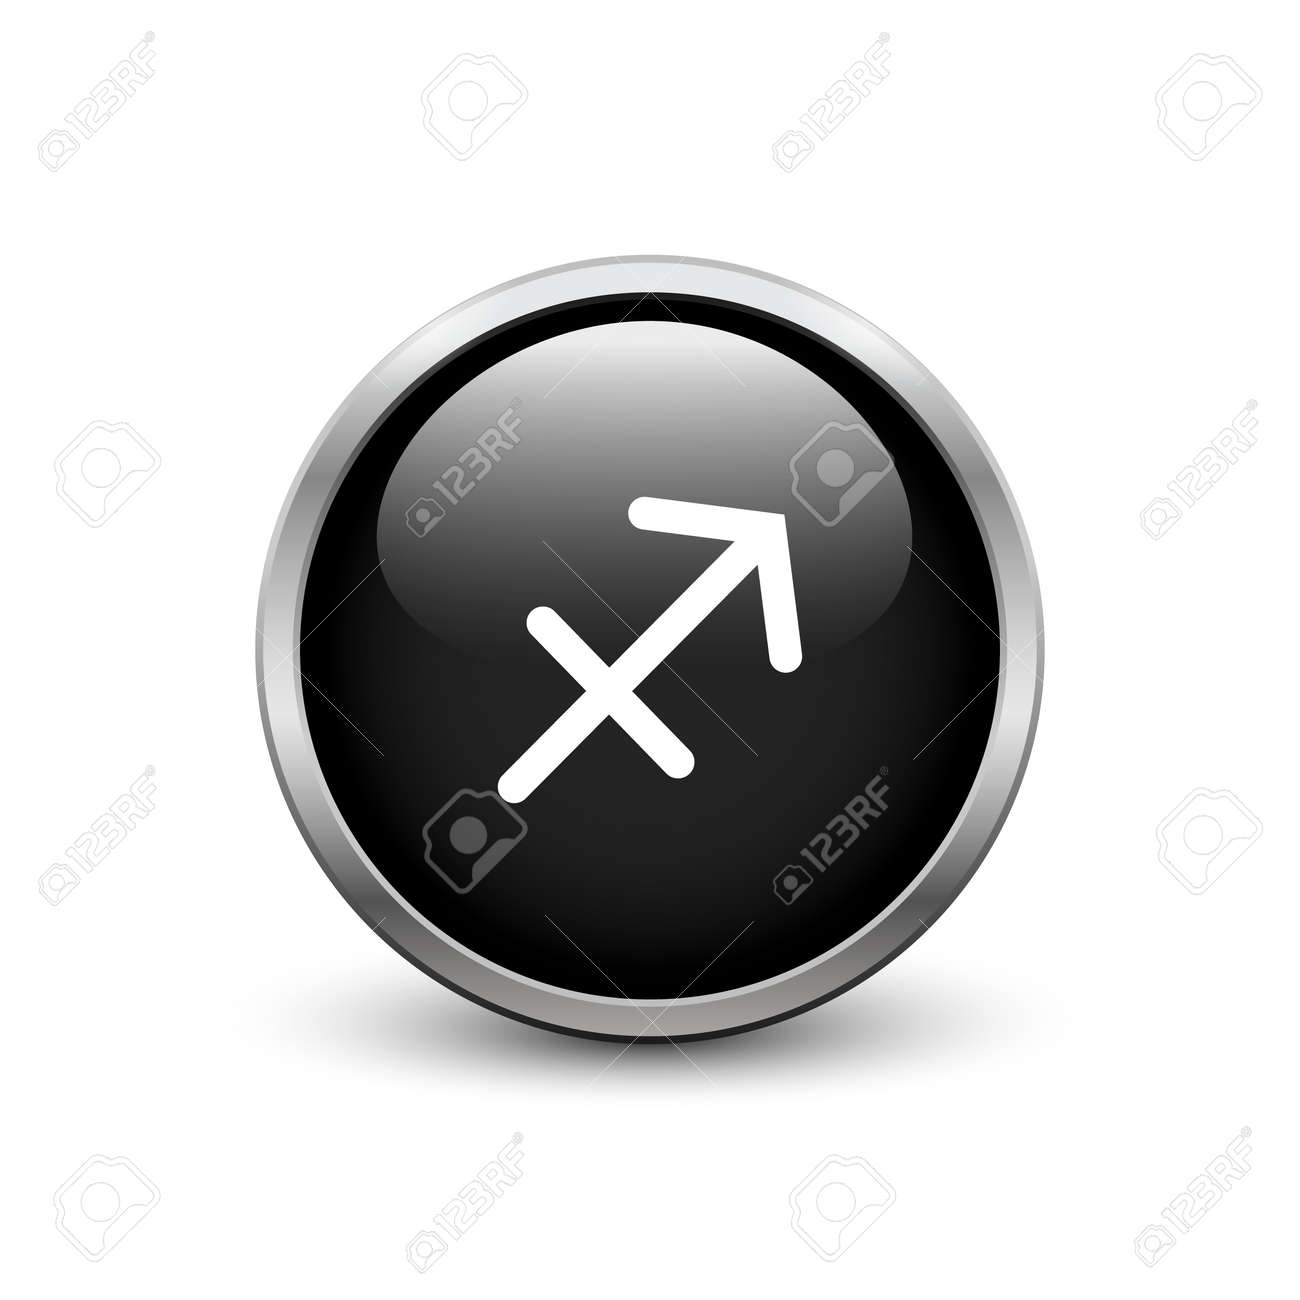 Sagittarius Zodiac Symbol Black Button With Metal Frame And